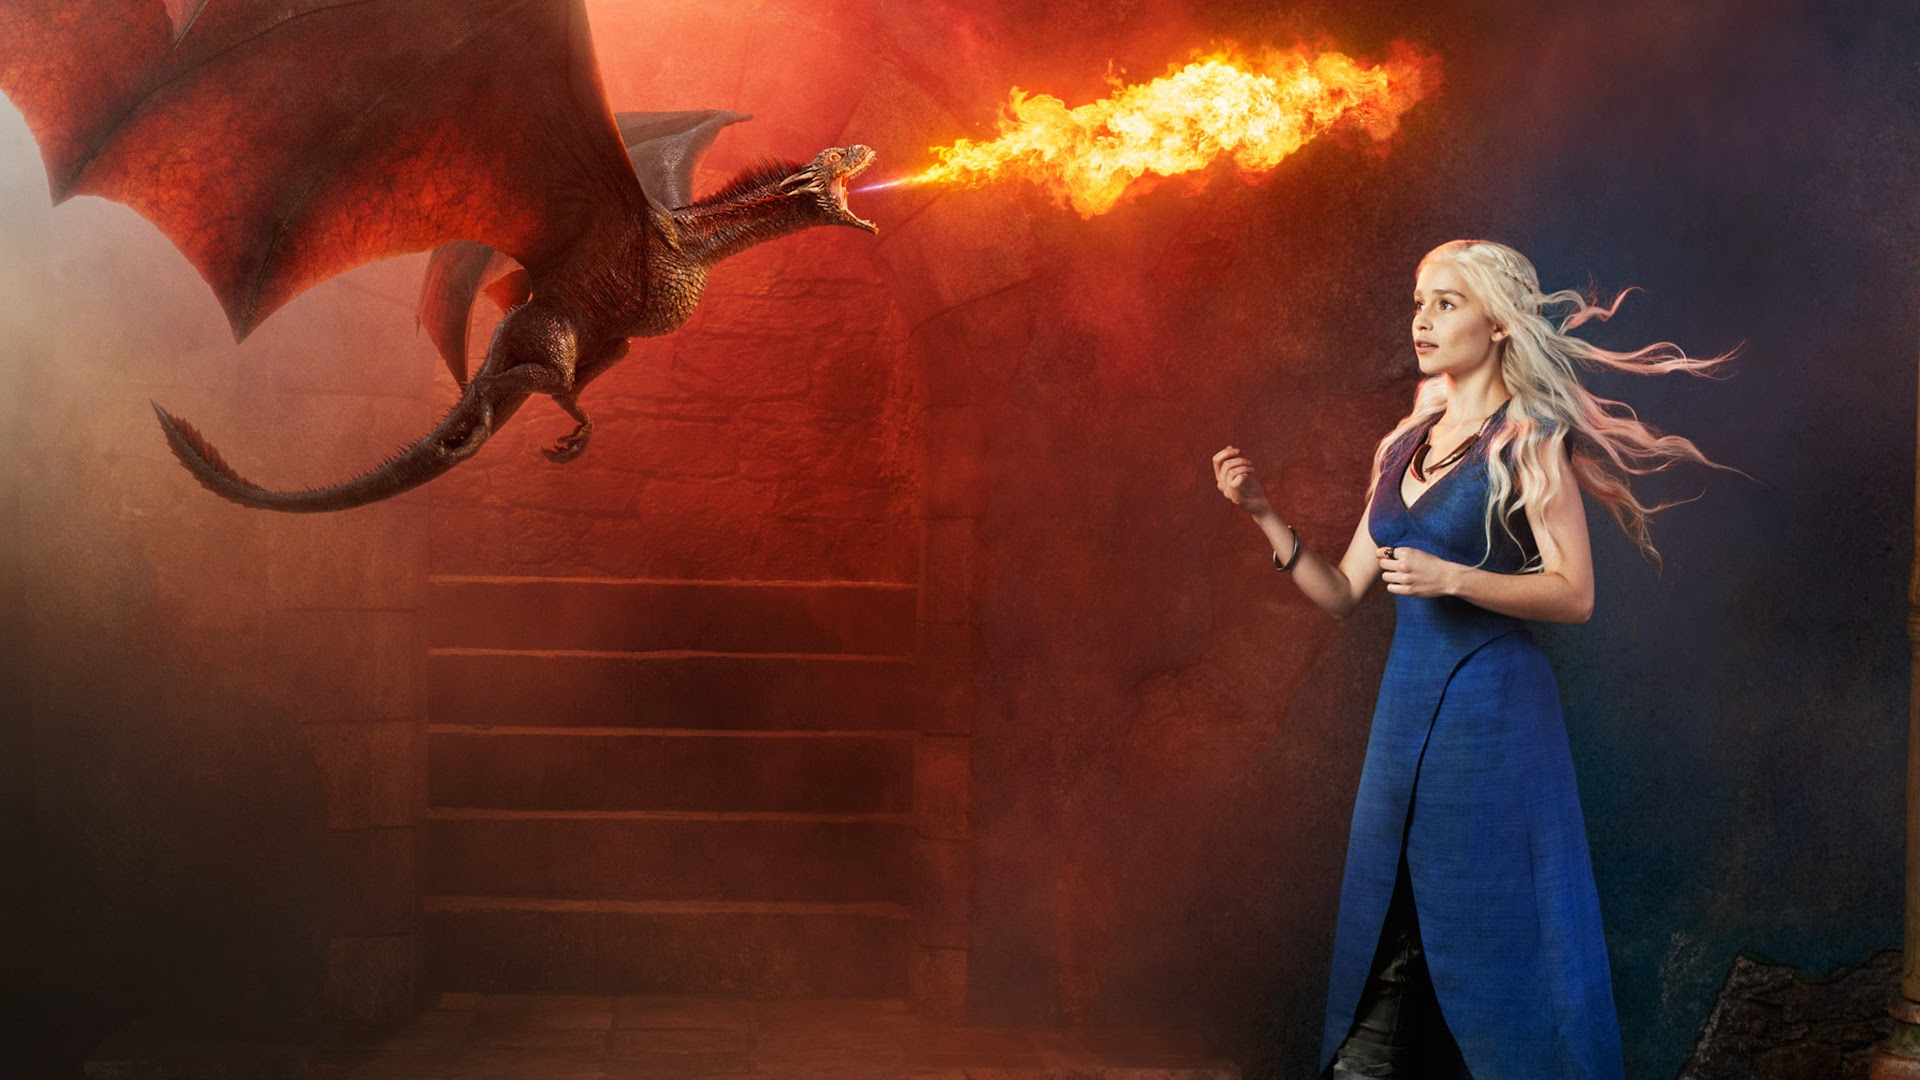 Daenerys Targaryen Game Of Thrones Wallpaper 38567435 Fanpop